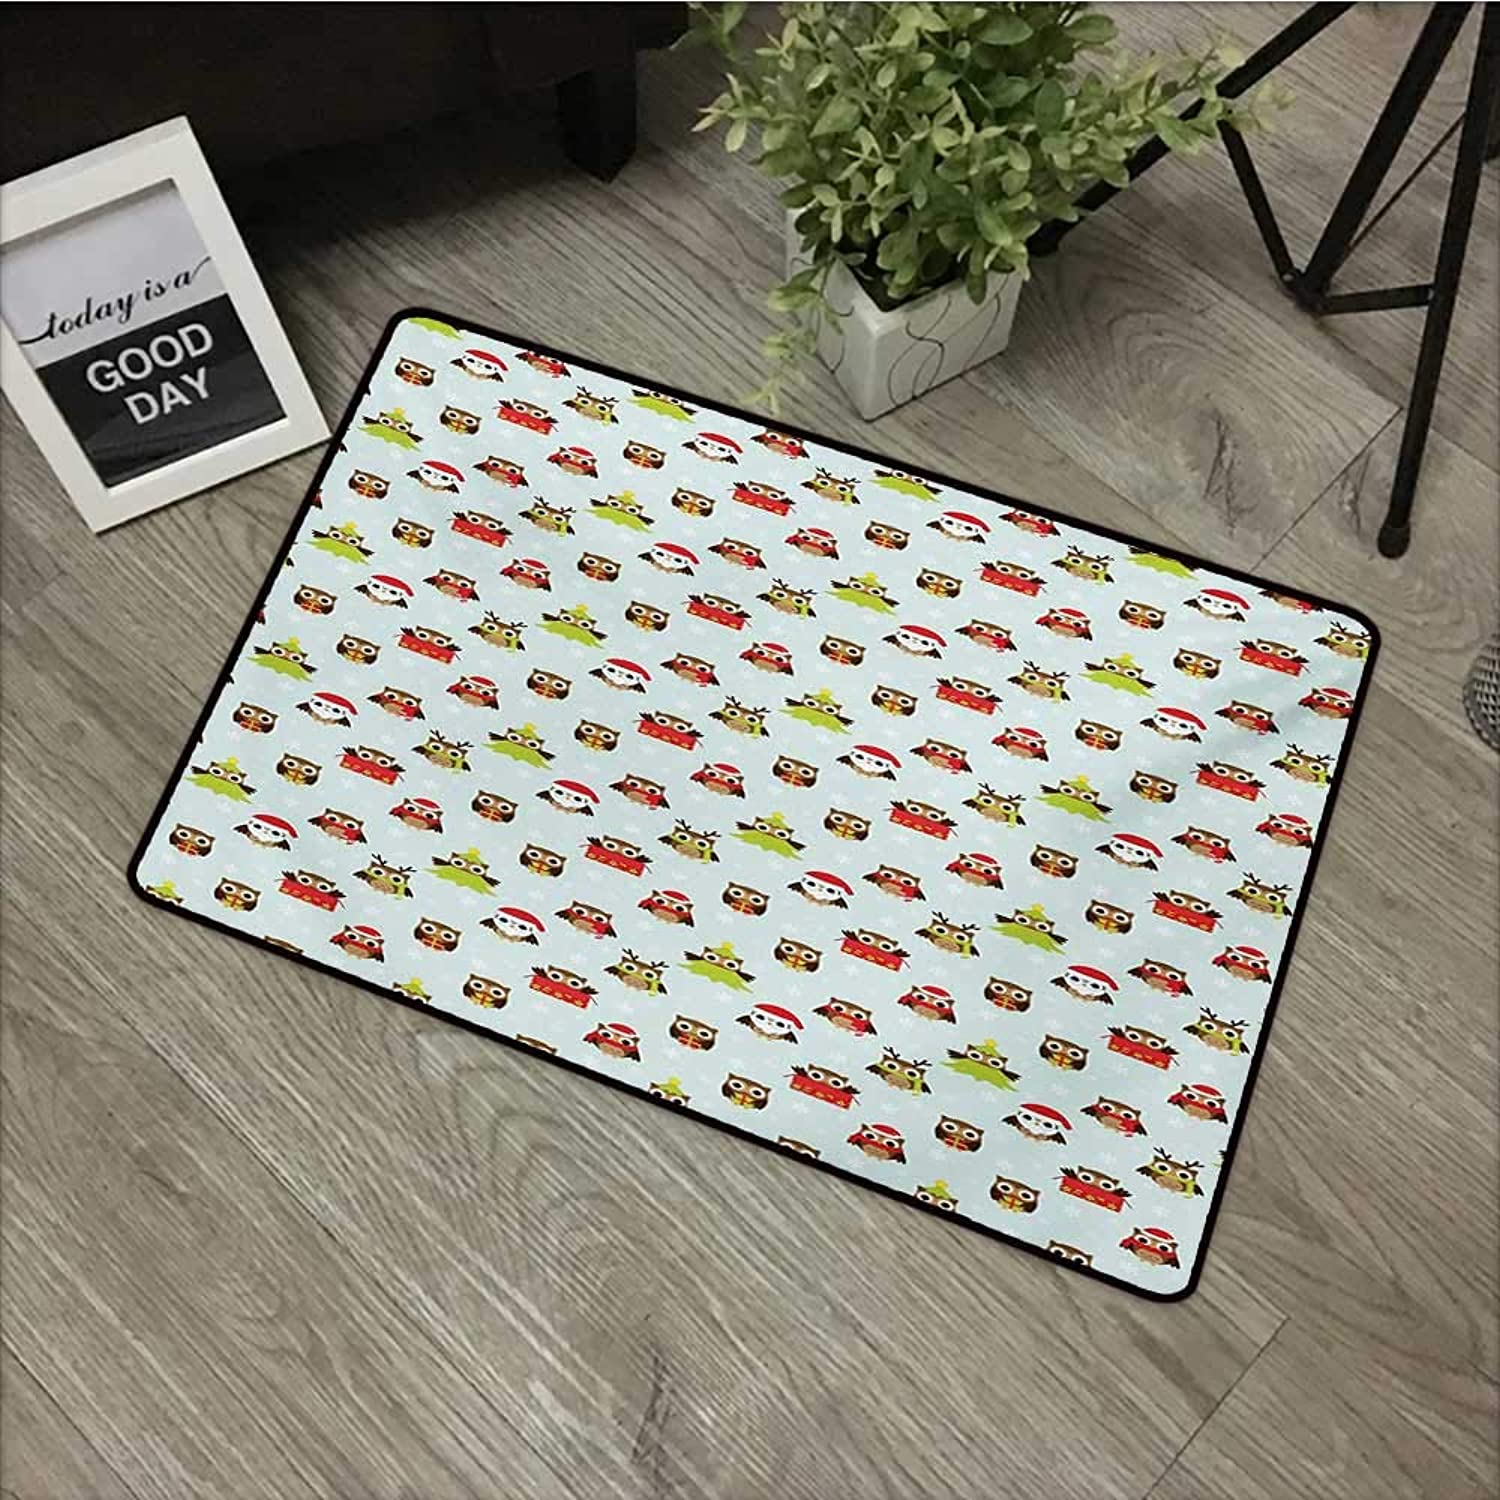 Restaurant mat W35 x L59 INCH Owls,Christmas Theme with Sweet Celebration Icons Santa Claus Pine Tree Owls with Presents,Multicolor with Non-Slip Backing Door Mat Carpet